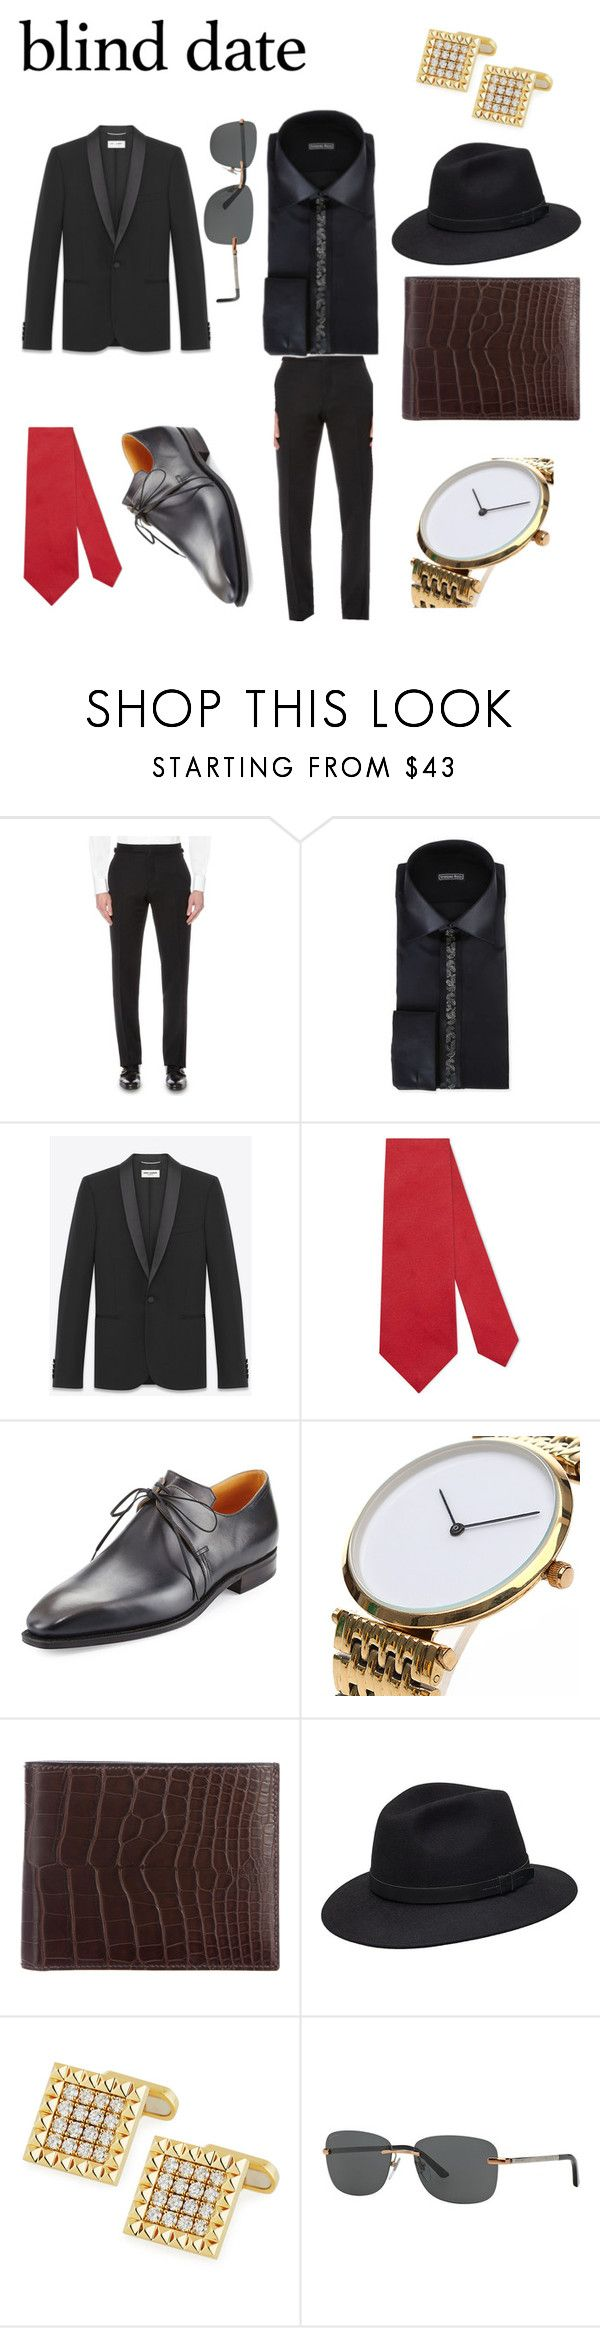 """""""Blind date"""" by joshua-latreille ❤ liked on Polyvore featuring Tom Ford, Stefano Ricci, Yves Saint Laurent, Gucci, Corthay, Hermès, Roberto Coin and Bulgari"""